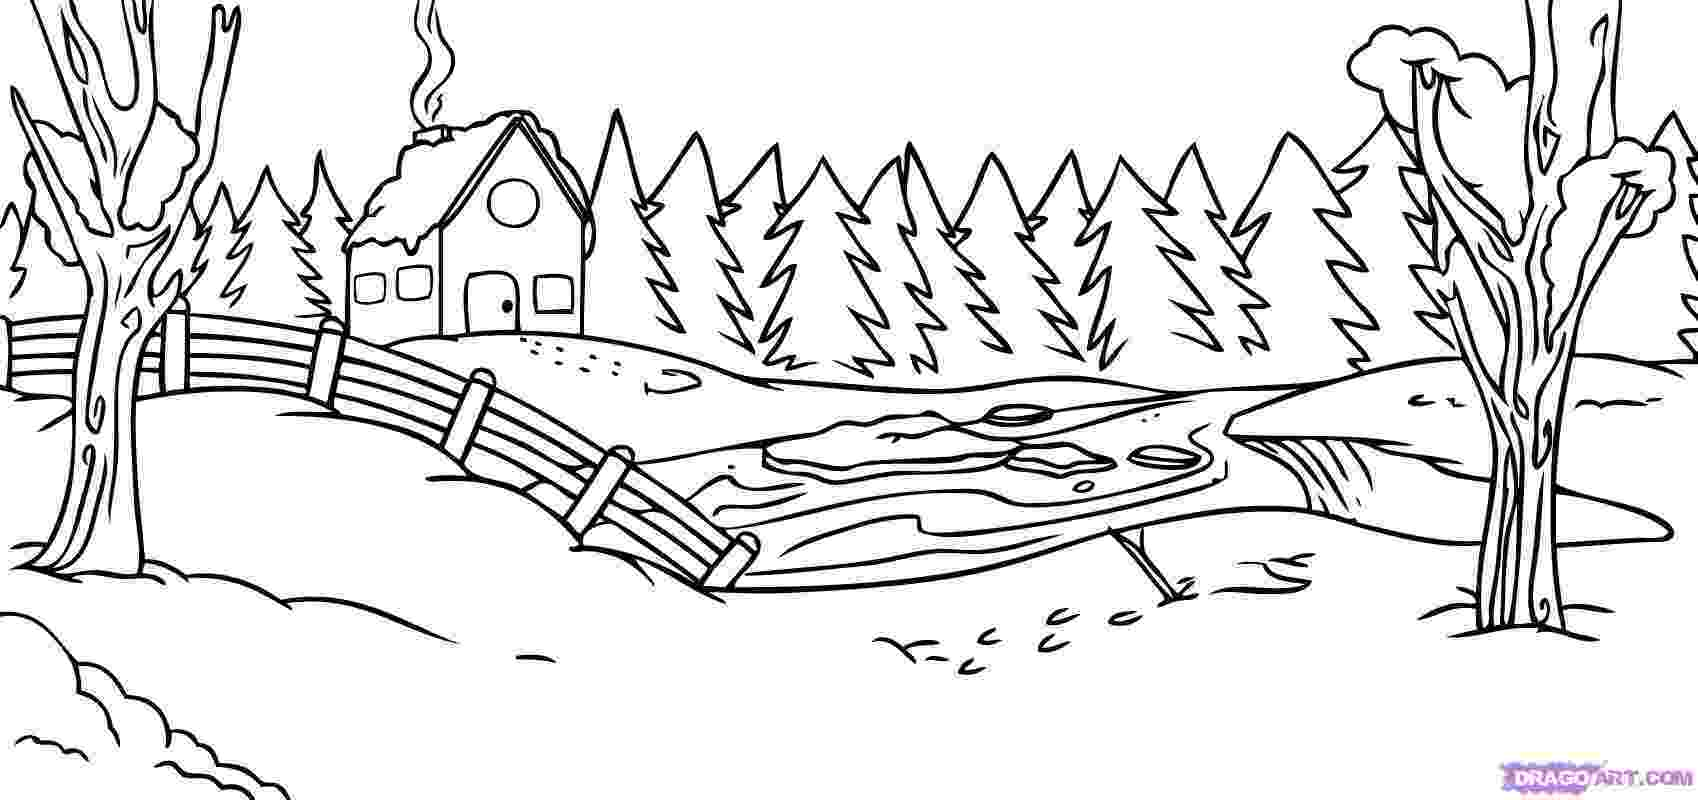 winter scene coloring pages free printable coloring pages of winter scenes coloring home scene winter pages coloring